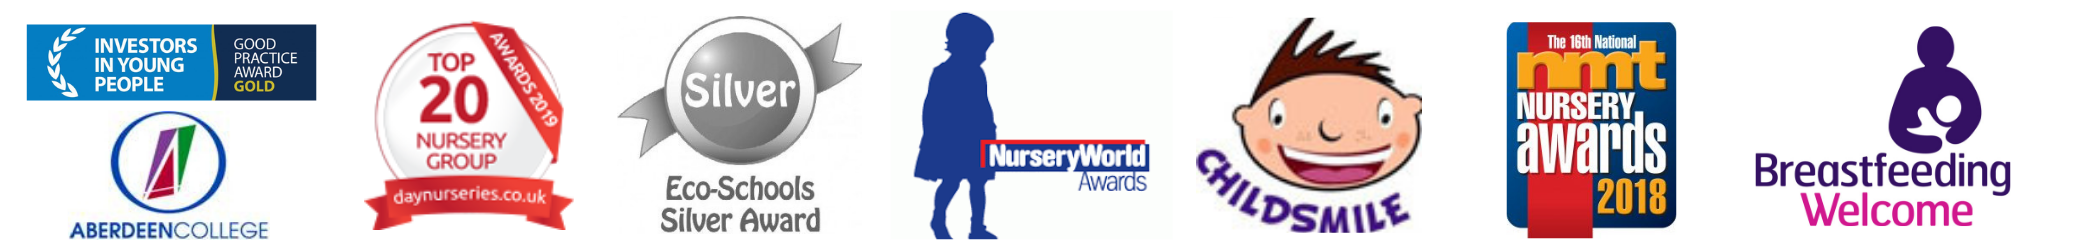 Cove Bay Nursery Awards